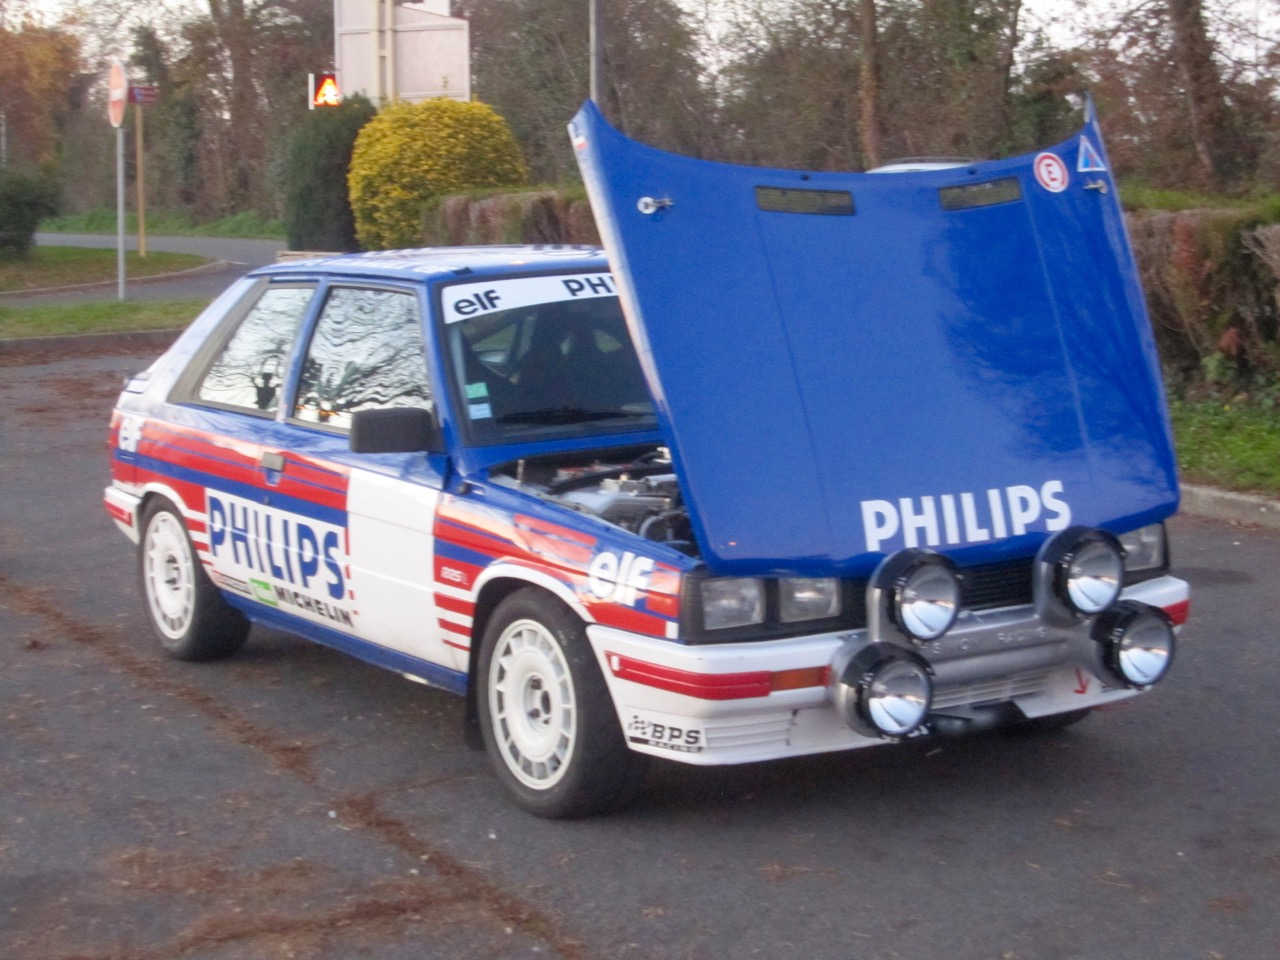 R11 turbo gr A VHC phillips